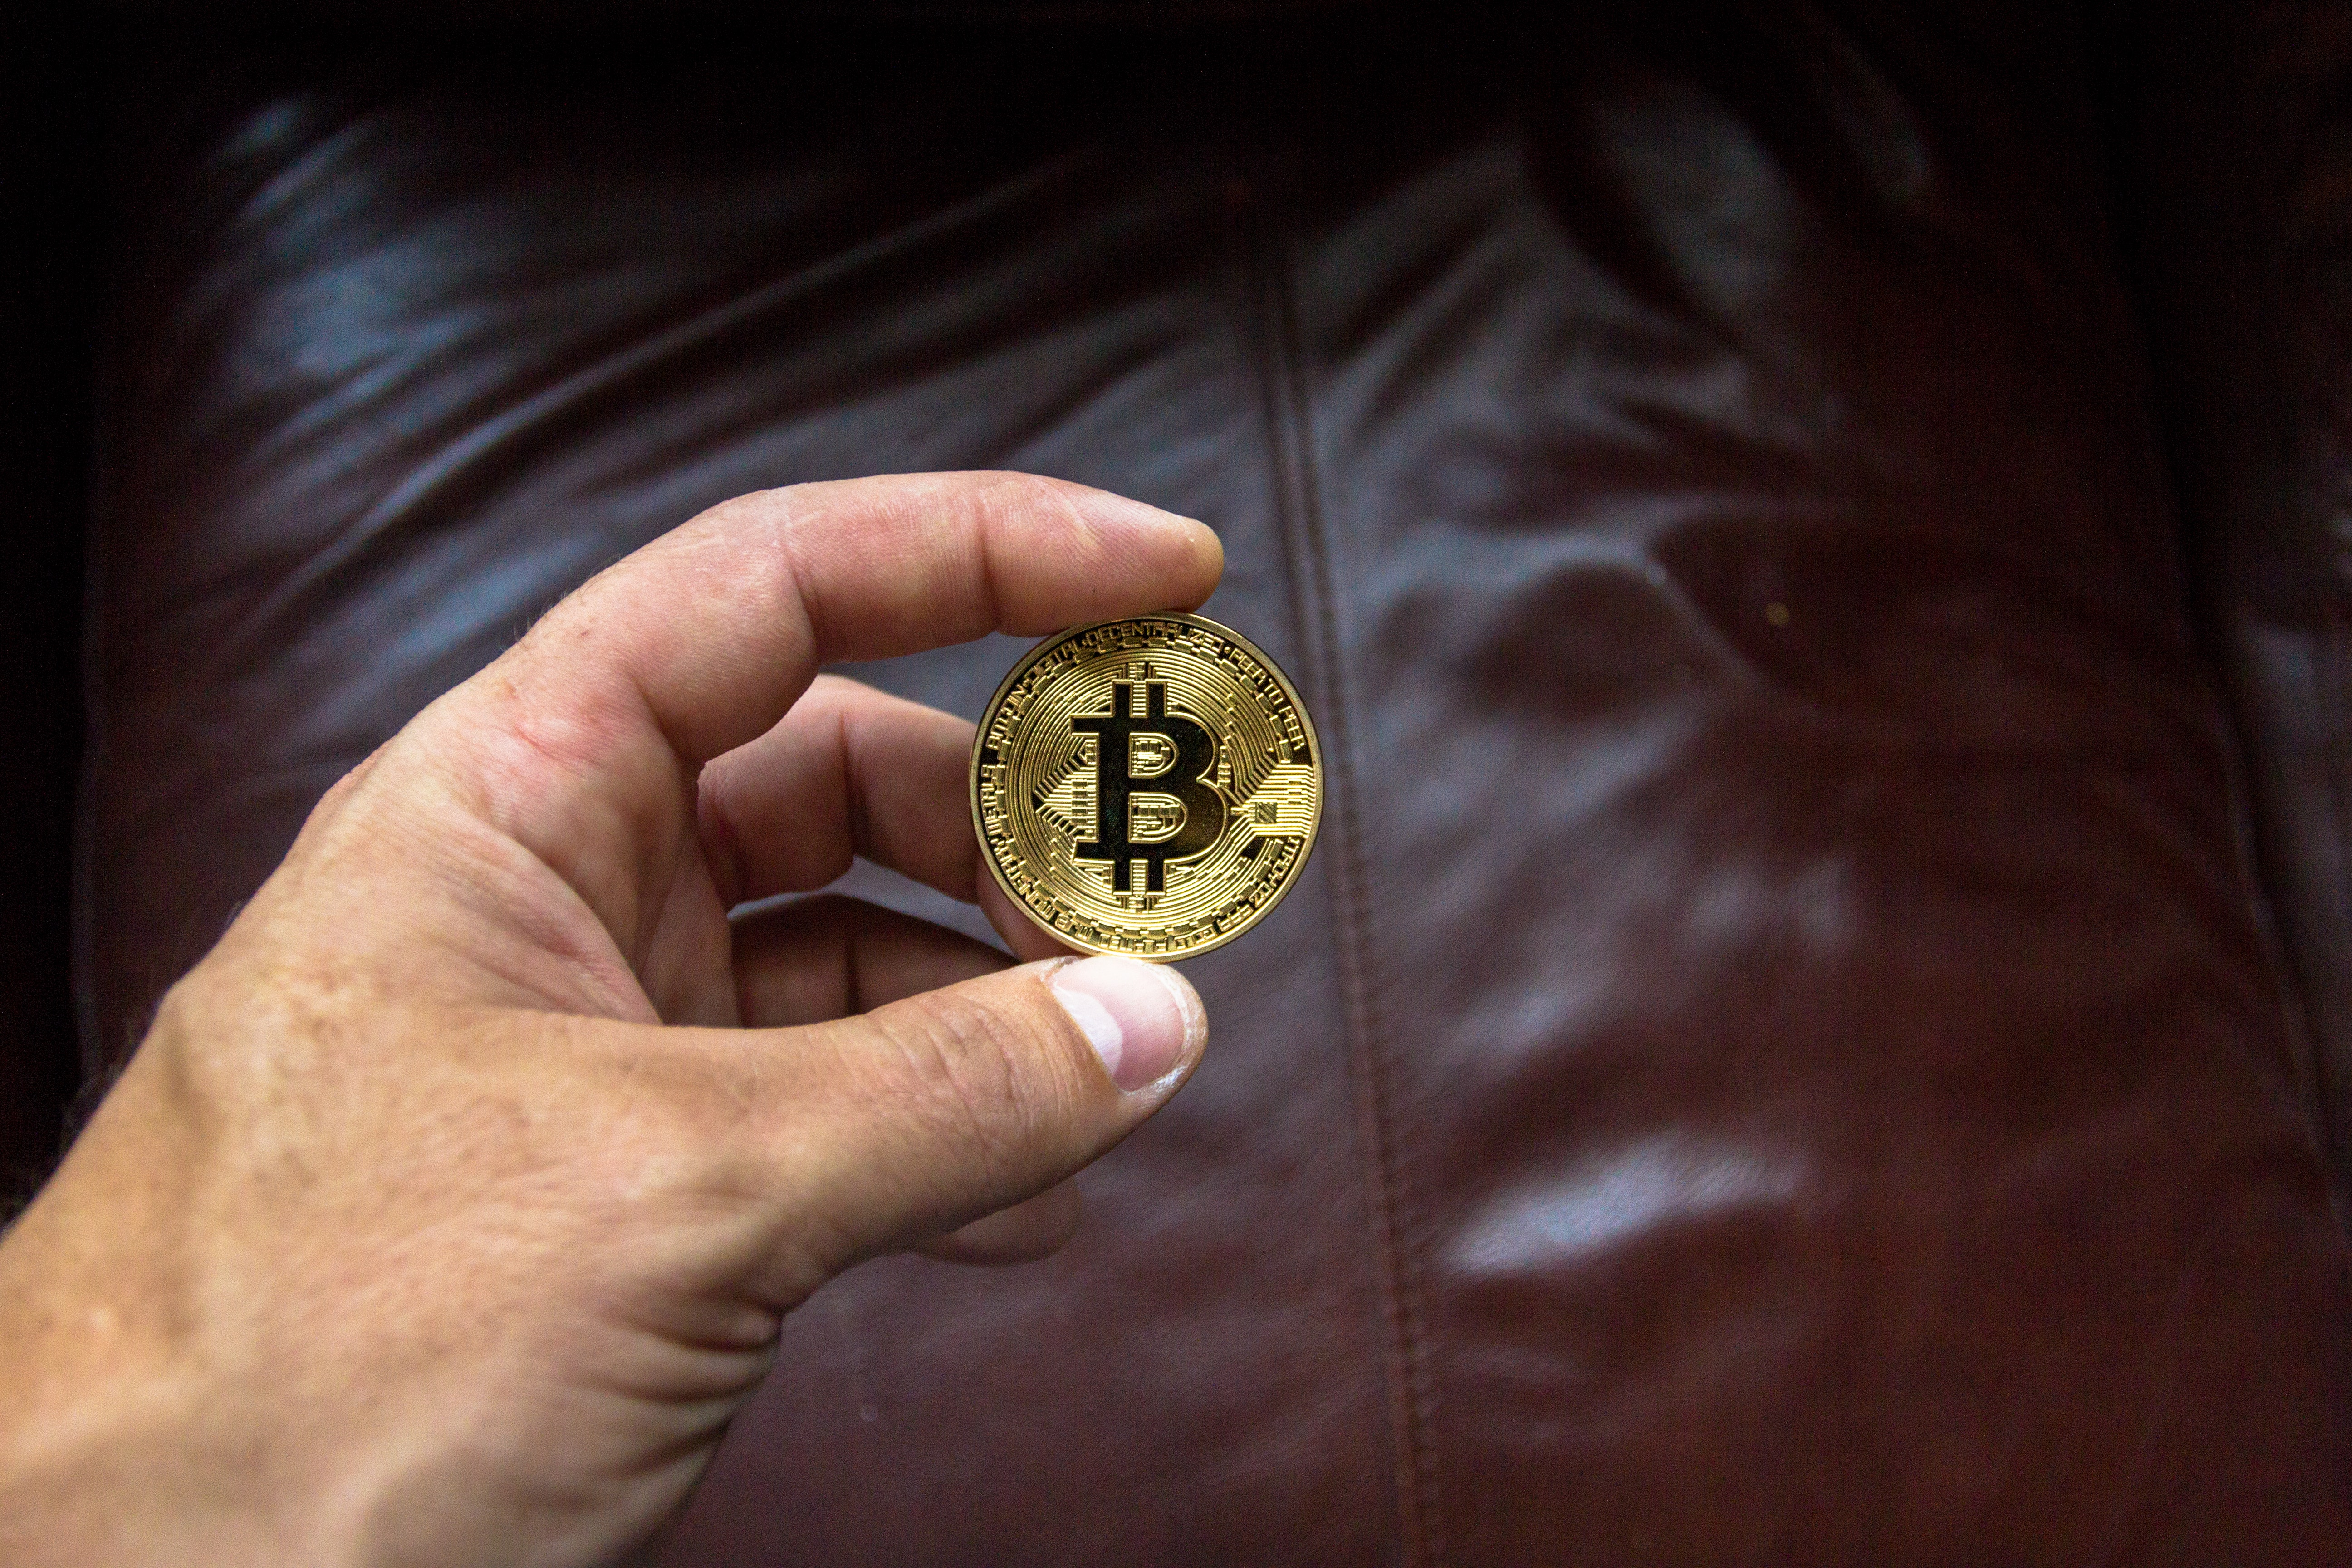 Round Gold-colored and Black Coin on Person's Hand, Bitcoin, Close-up, Coin, Commerce, HQ Photo